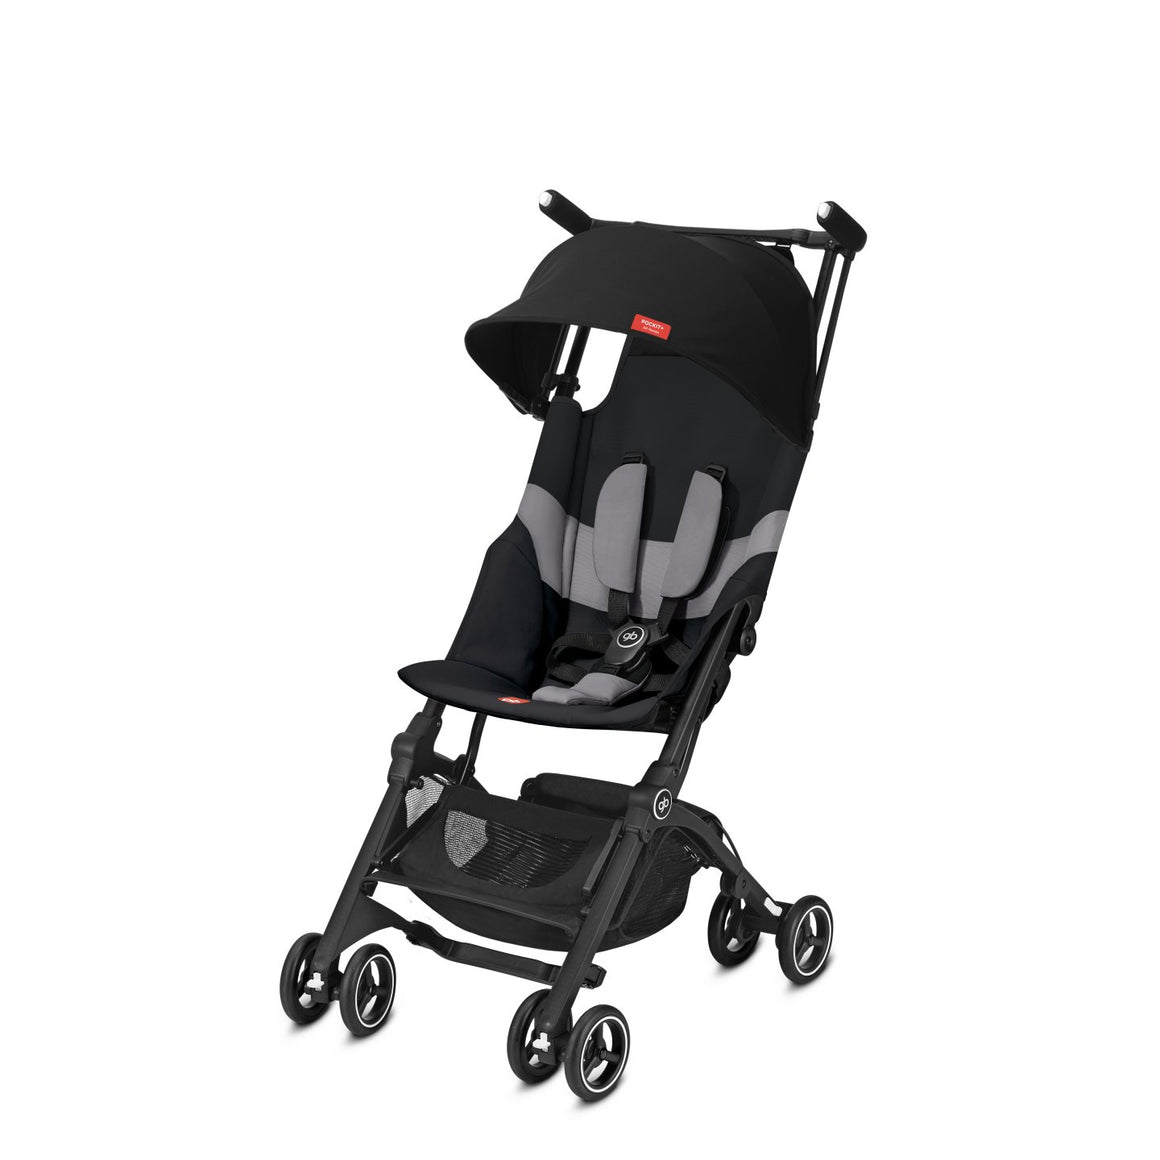 GB Pockit+ All-terrain Stroller-Prams Strollers - Travel-GB | Baby Little Planet